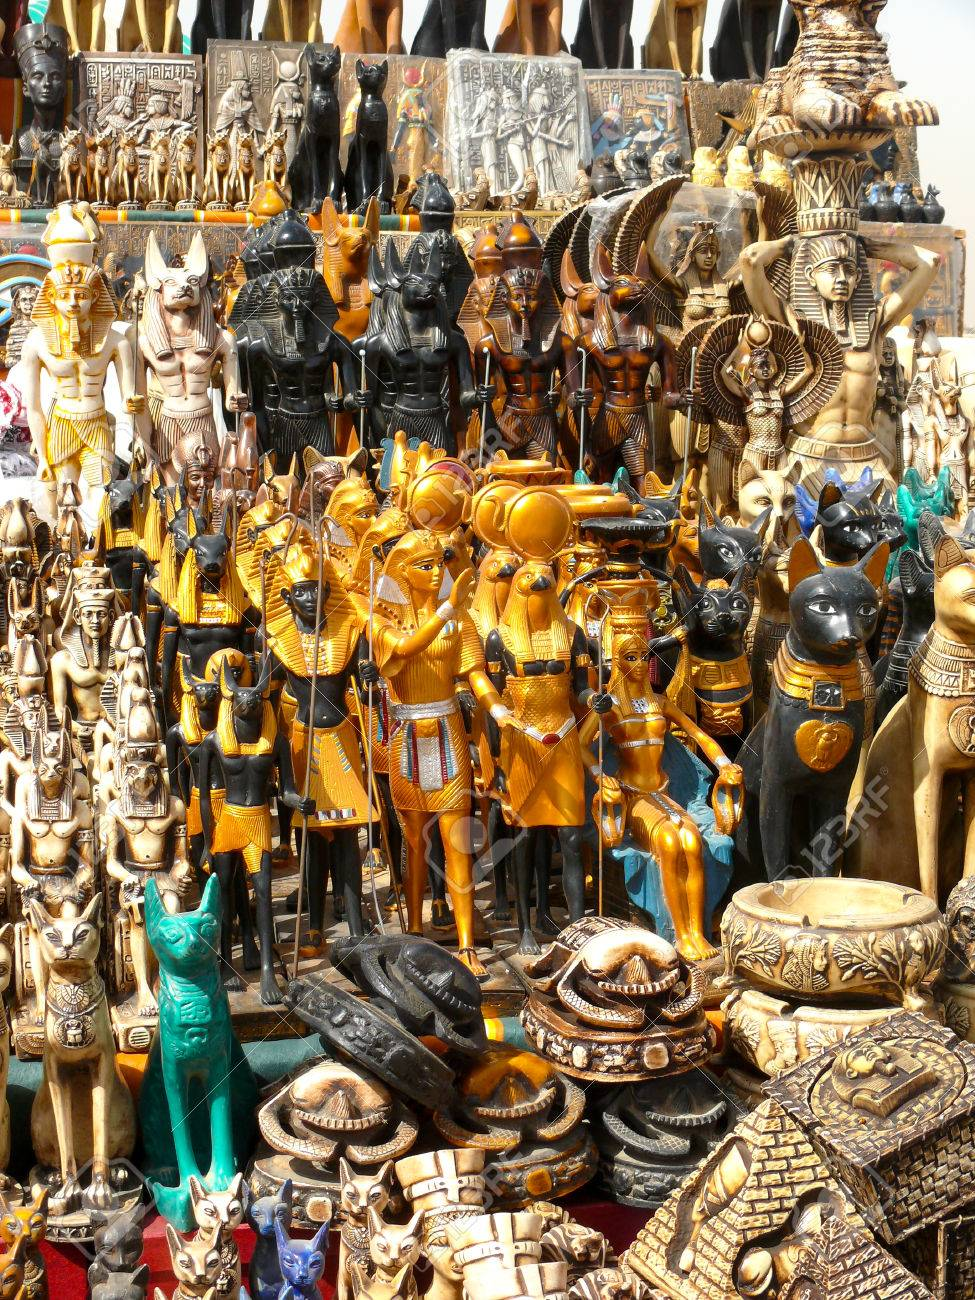 Suveniri - Page 8 37423411-typical-merchandise-of-souvenirs-in-a-street-market-at-cairo-egypt-